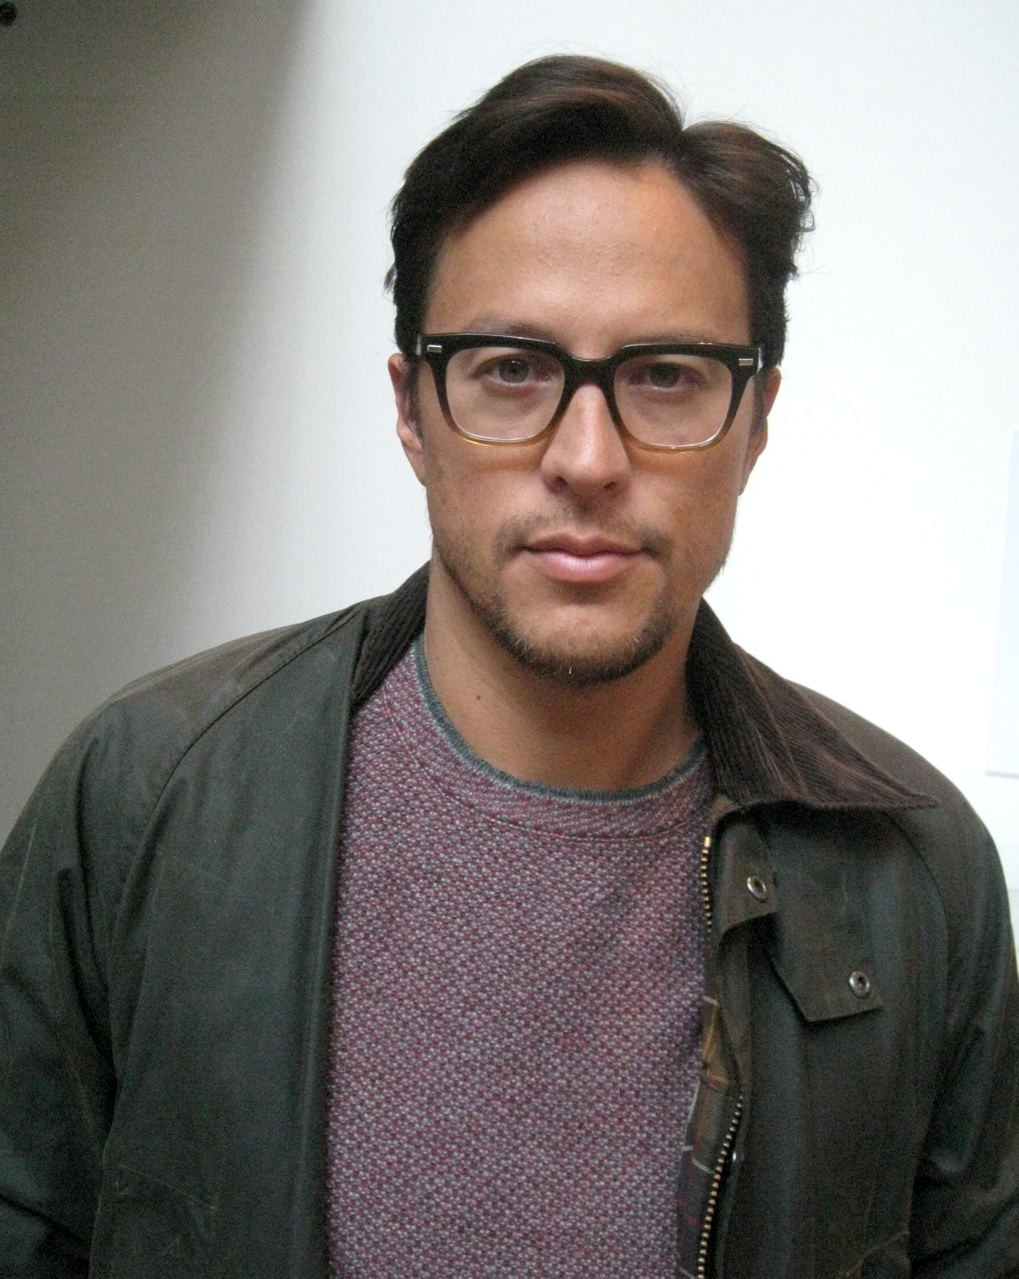 Cary Fukunaga announced as new Bond director